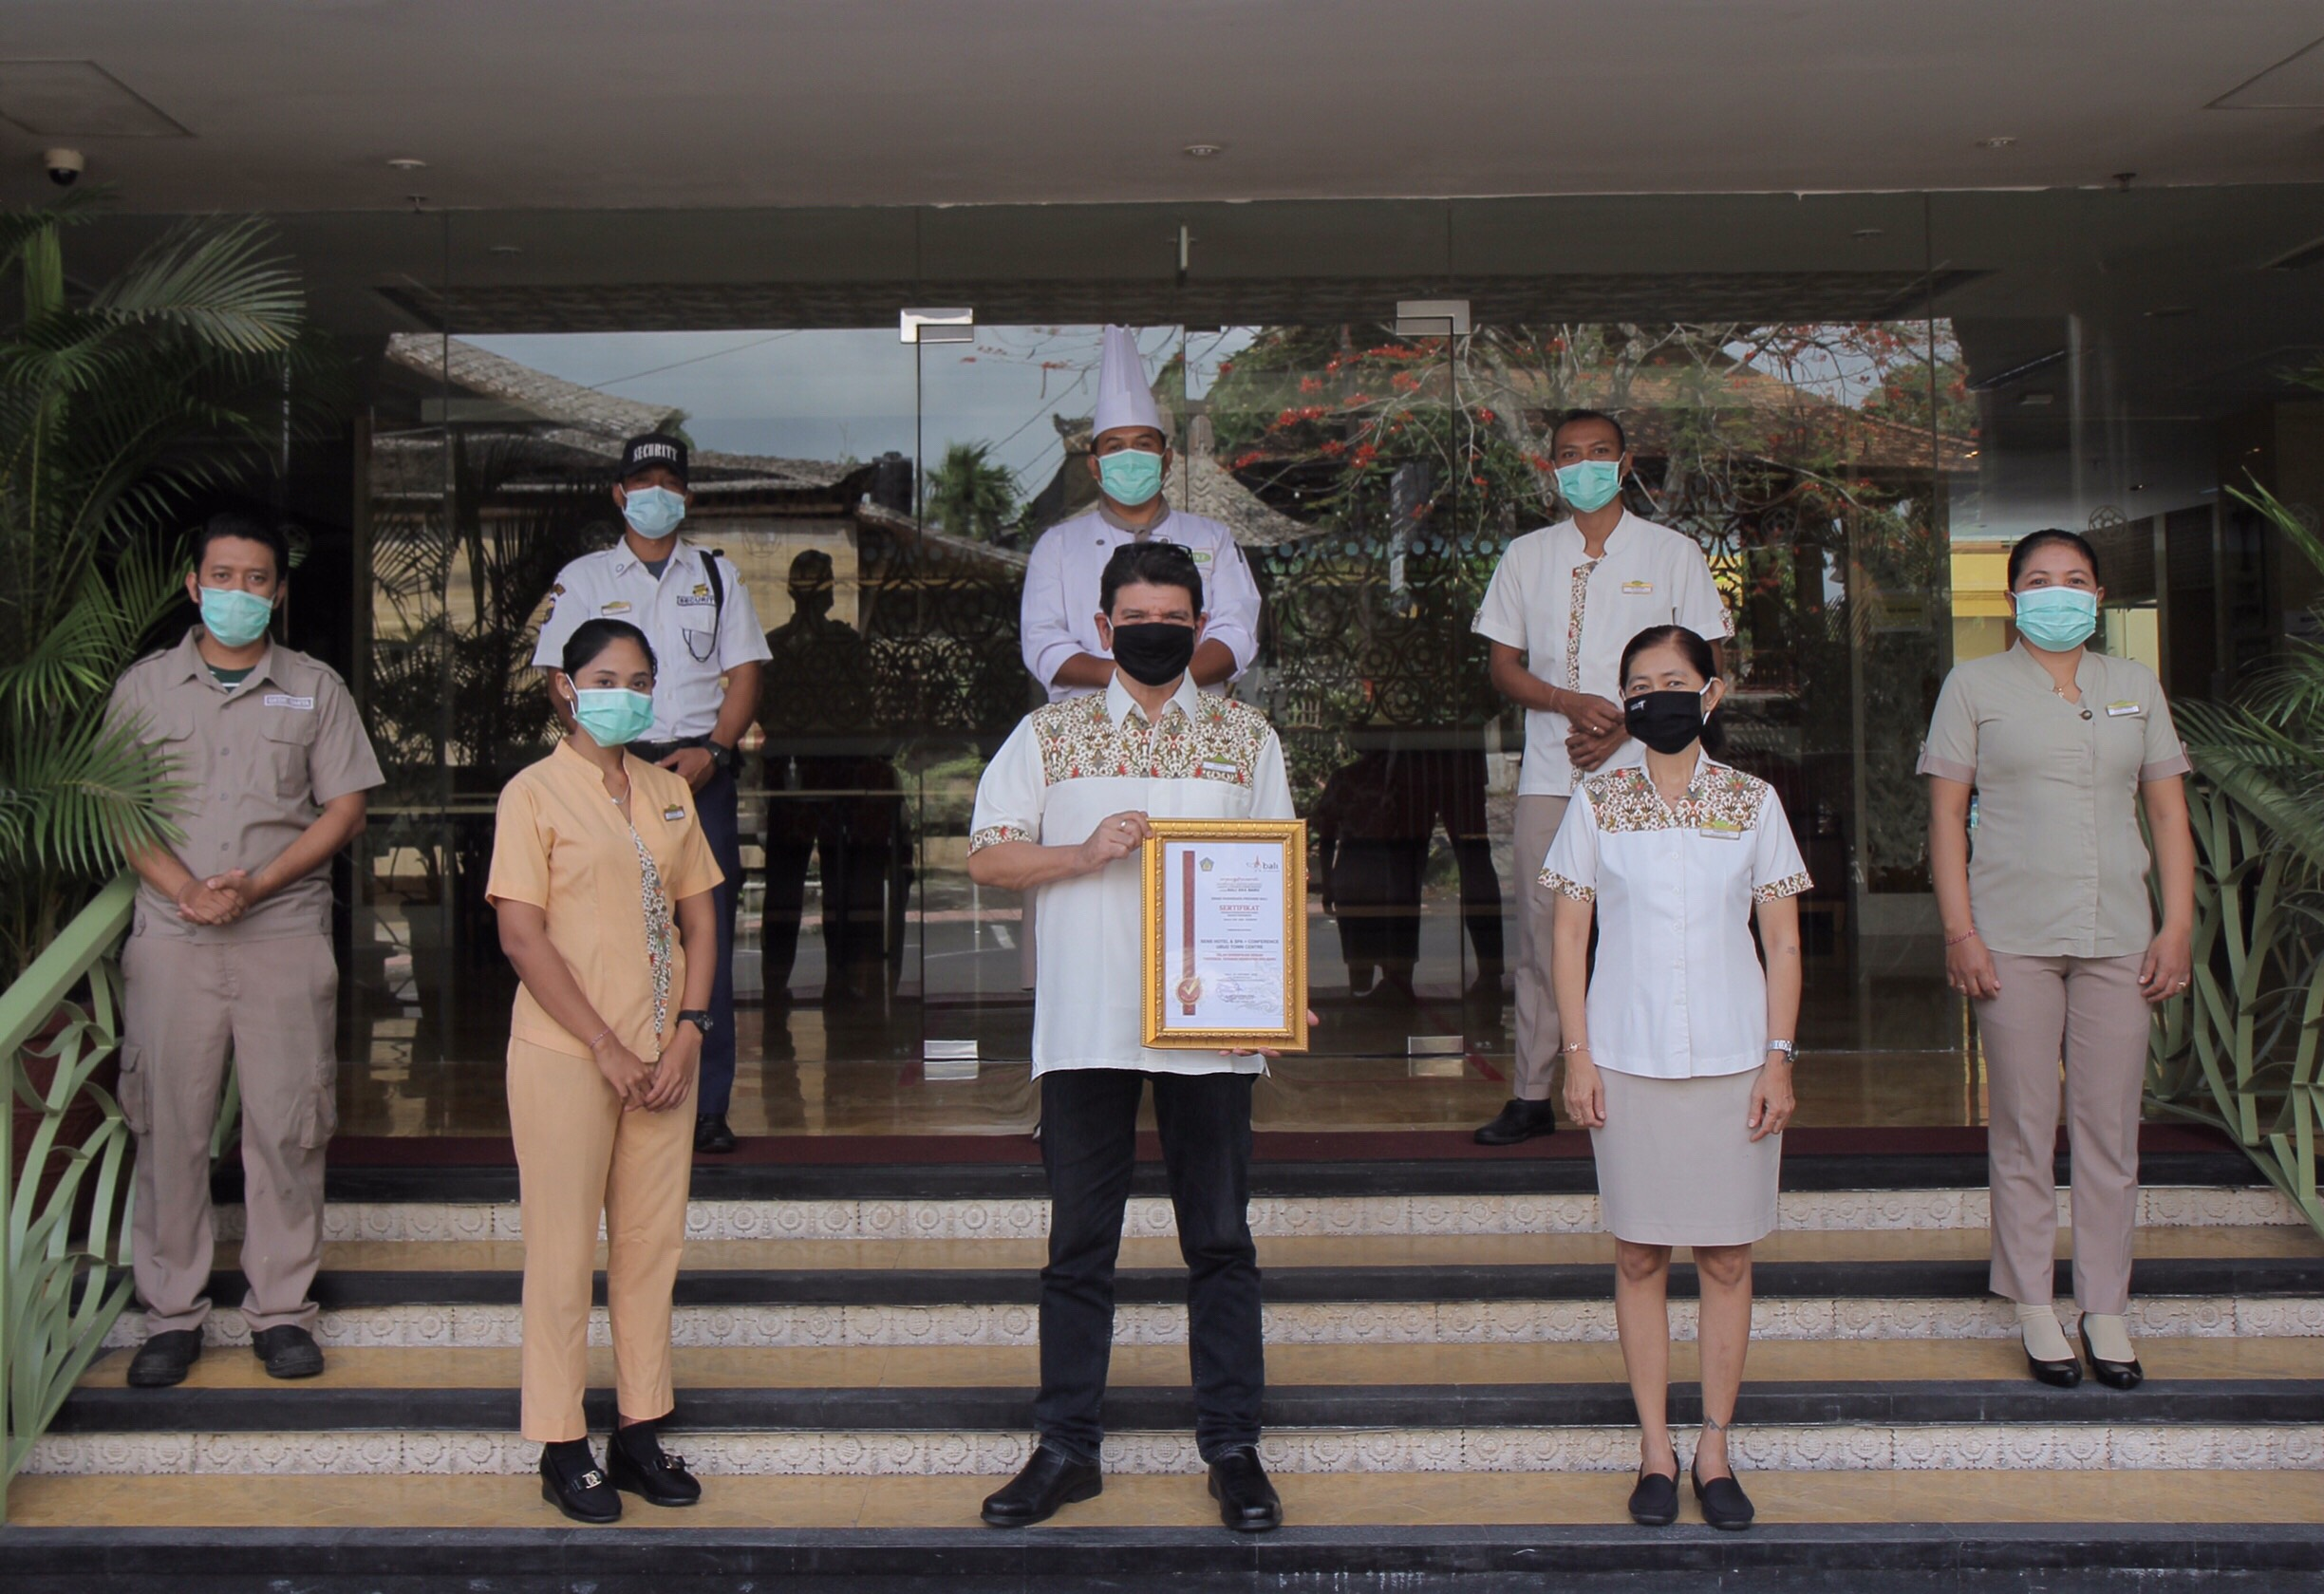 http://highend-traveller.com/sens-hotel-spa-has-received-the-new-normal-certification-from-the-bali-government/